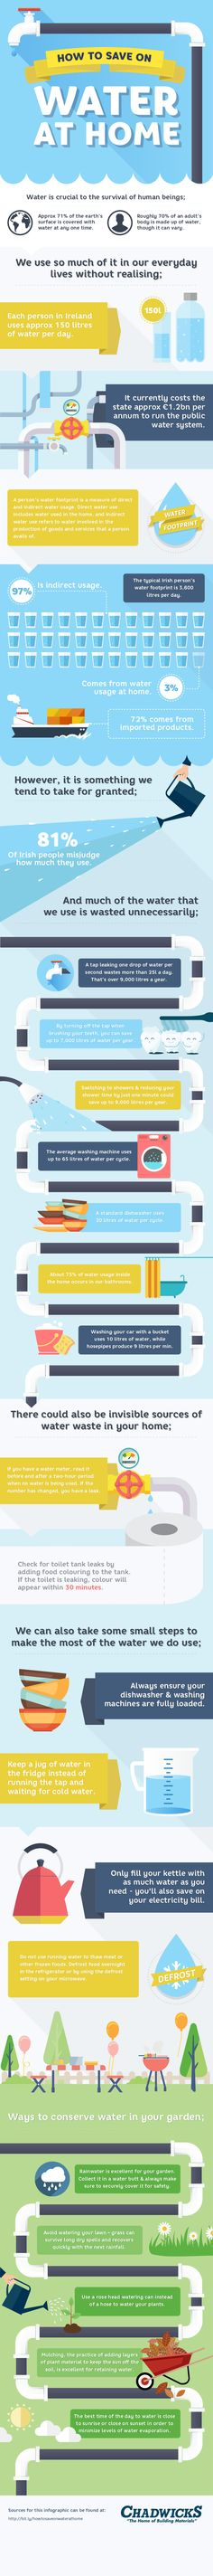 Infographic - How to save water at home. Created by www.tinderpoint.com